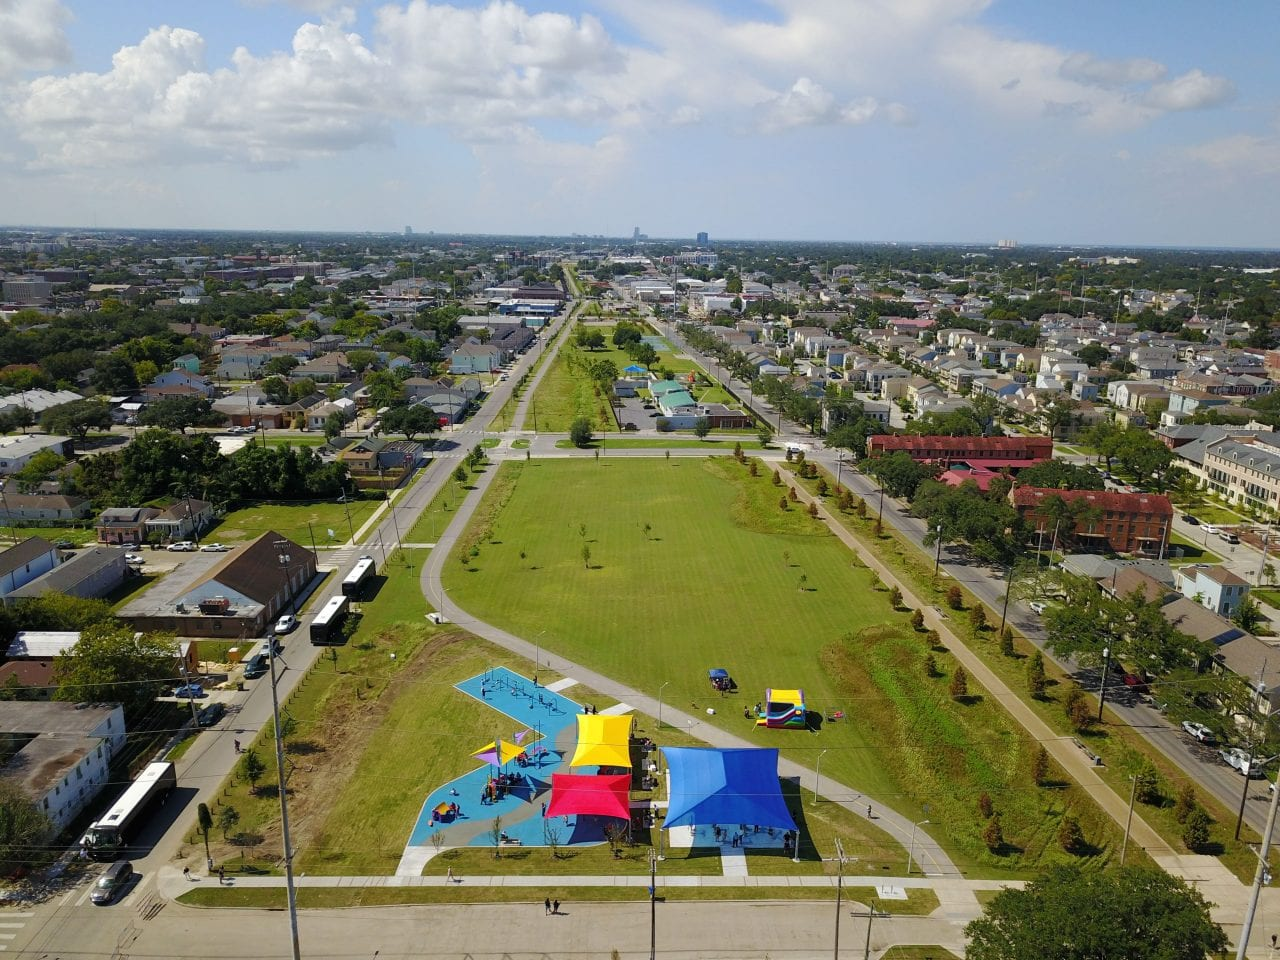 Lafitte Greenway by New Orleans Recreation Development Commission